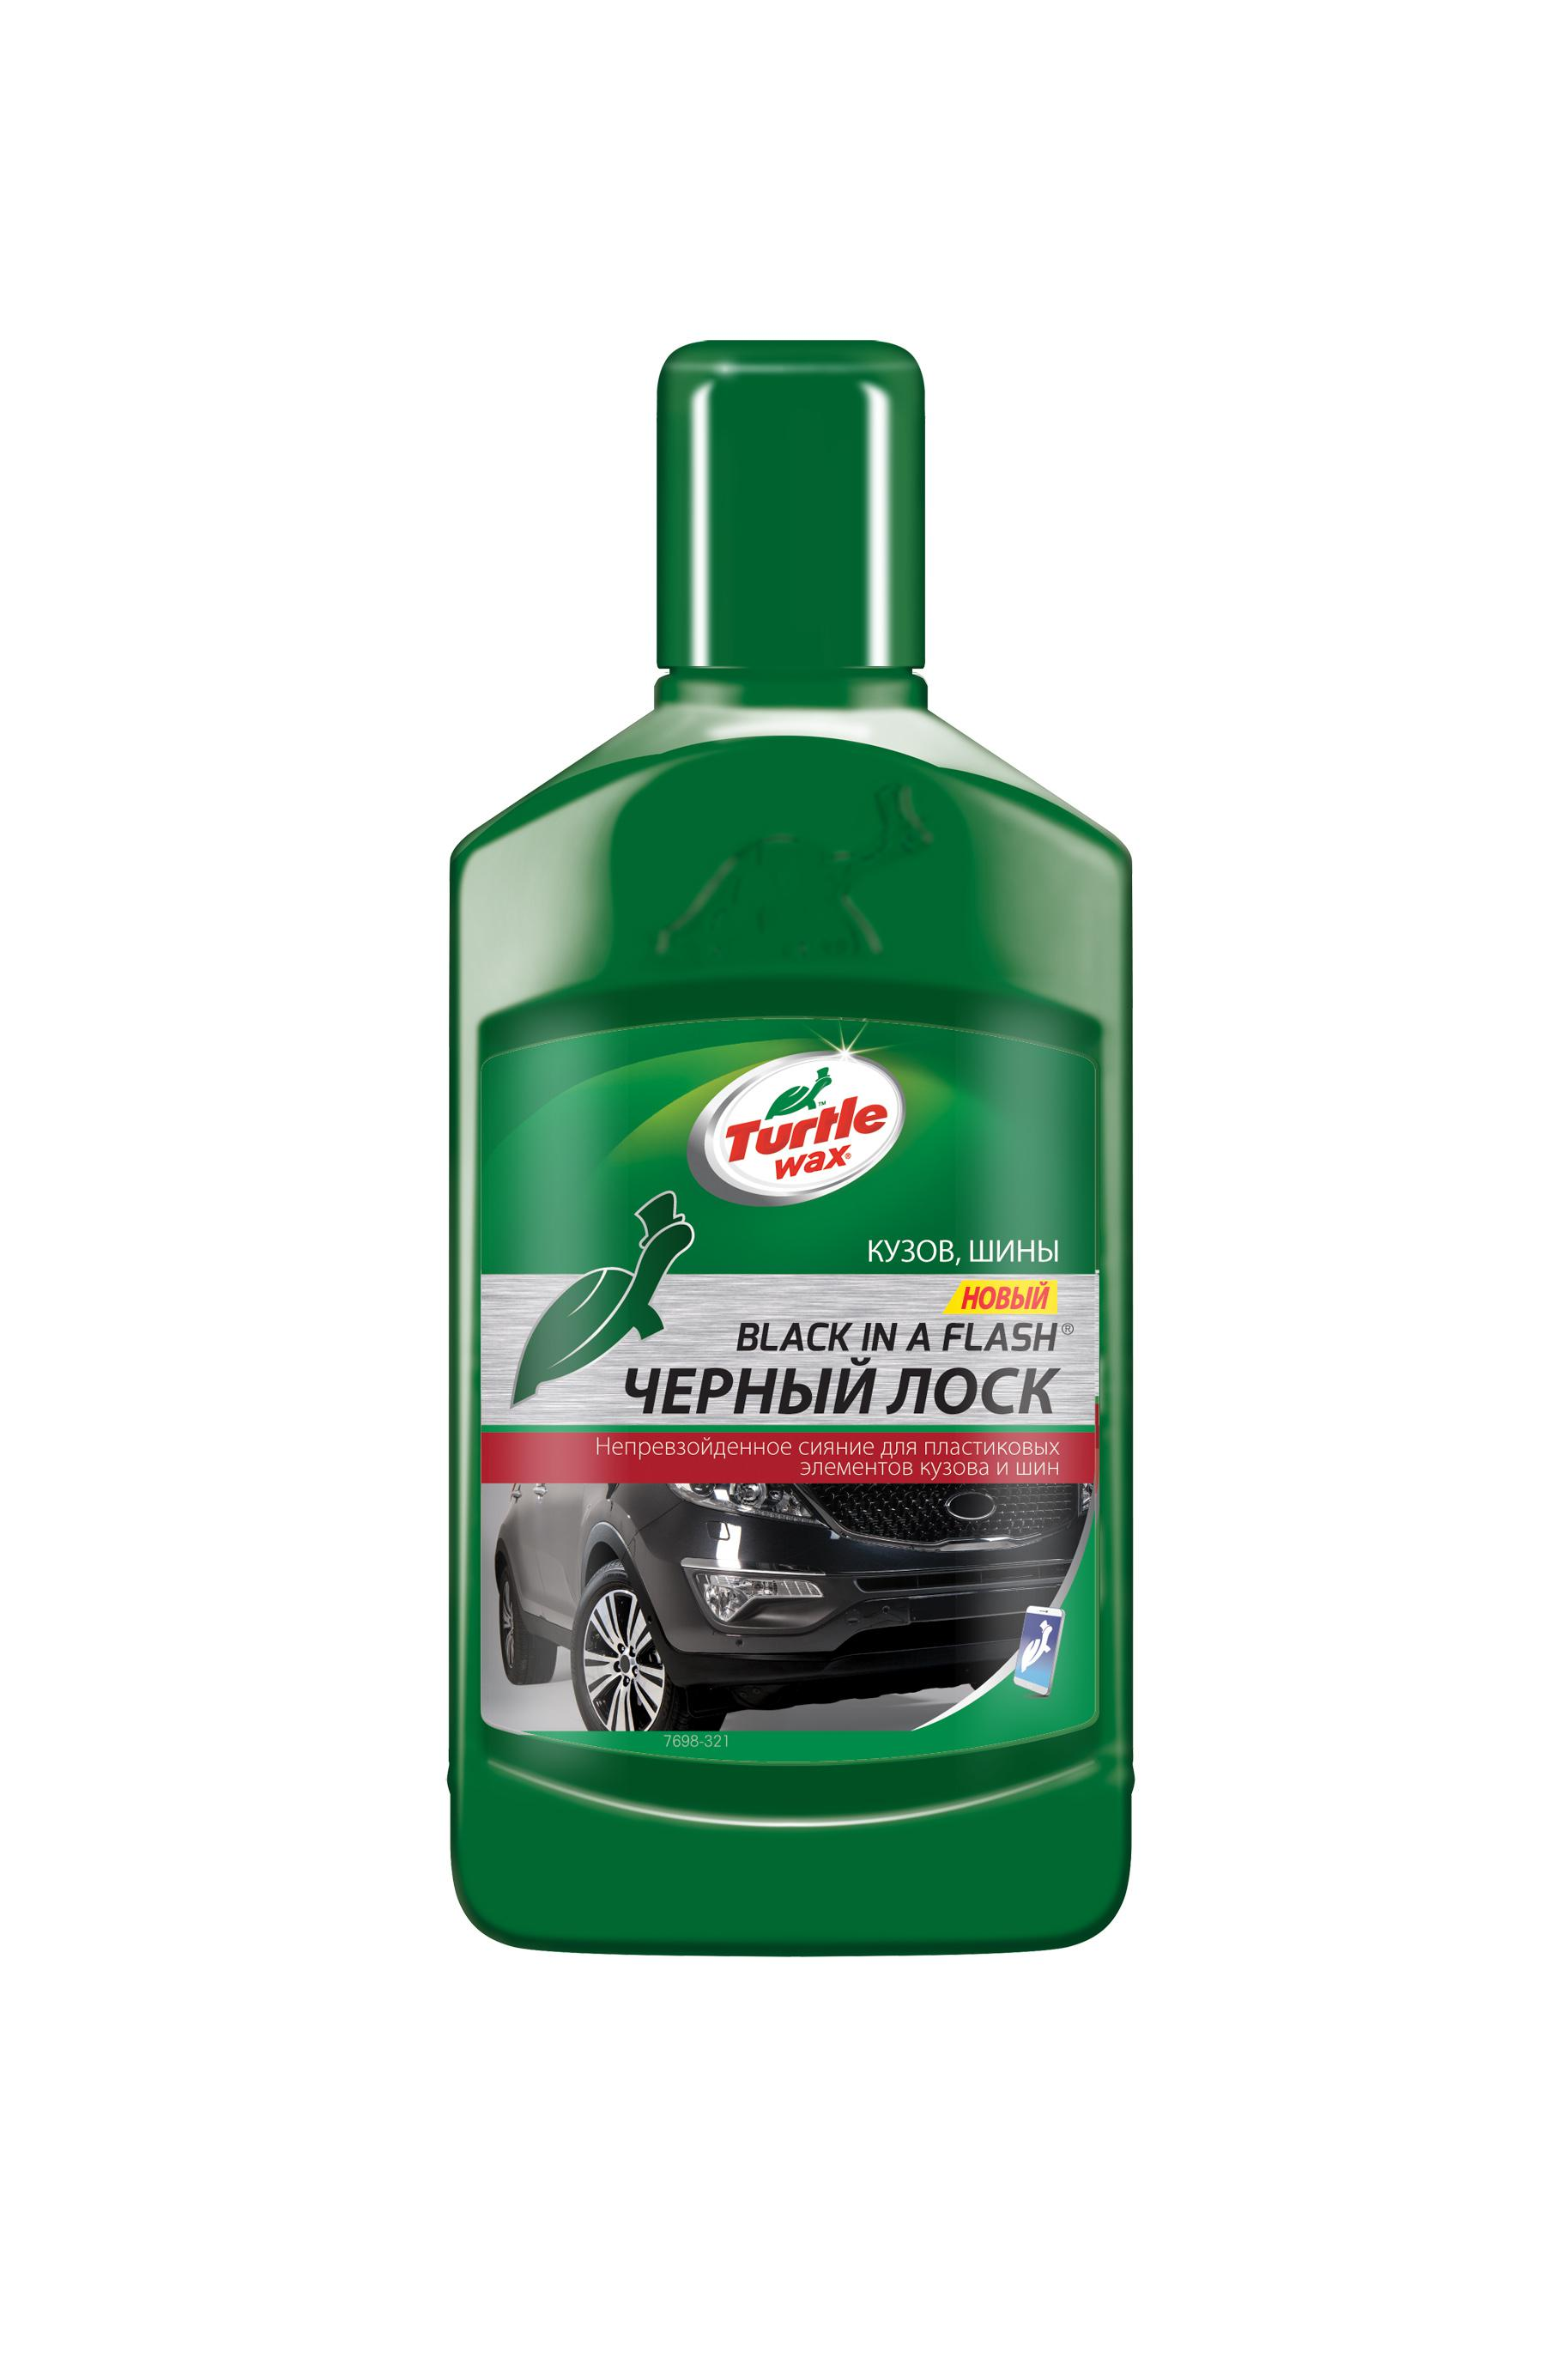 Восстановитель Turtle wax Black in a flash Черный лоск 300мл антидождь 300 мл turtle wax clearvue rain repel 53022